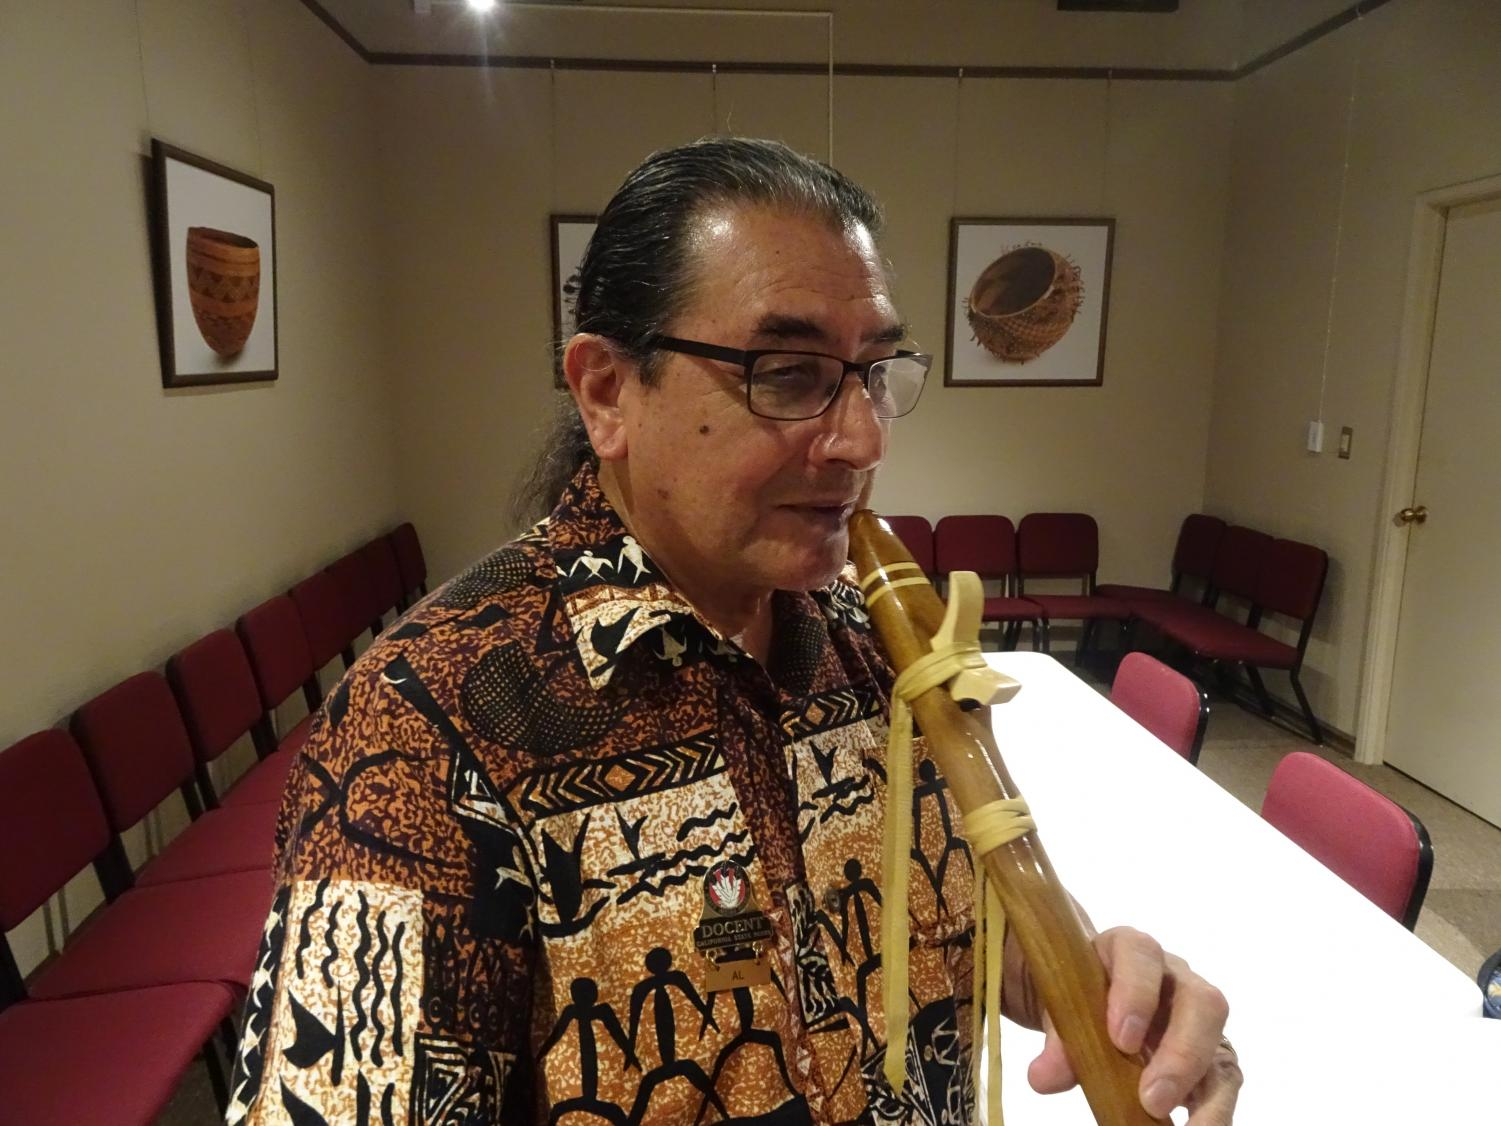 Al Striplen is a retired professor and counselor at Sacramento State as well as a teacher of Native American flute. He said that he separates his Indigenous heritage from Thanksgiving, in order to participate in the holiday.